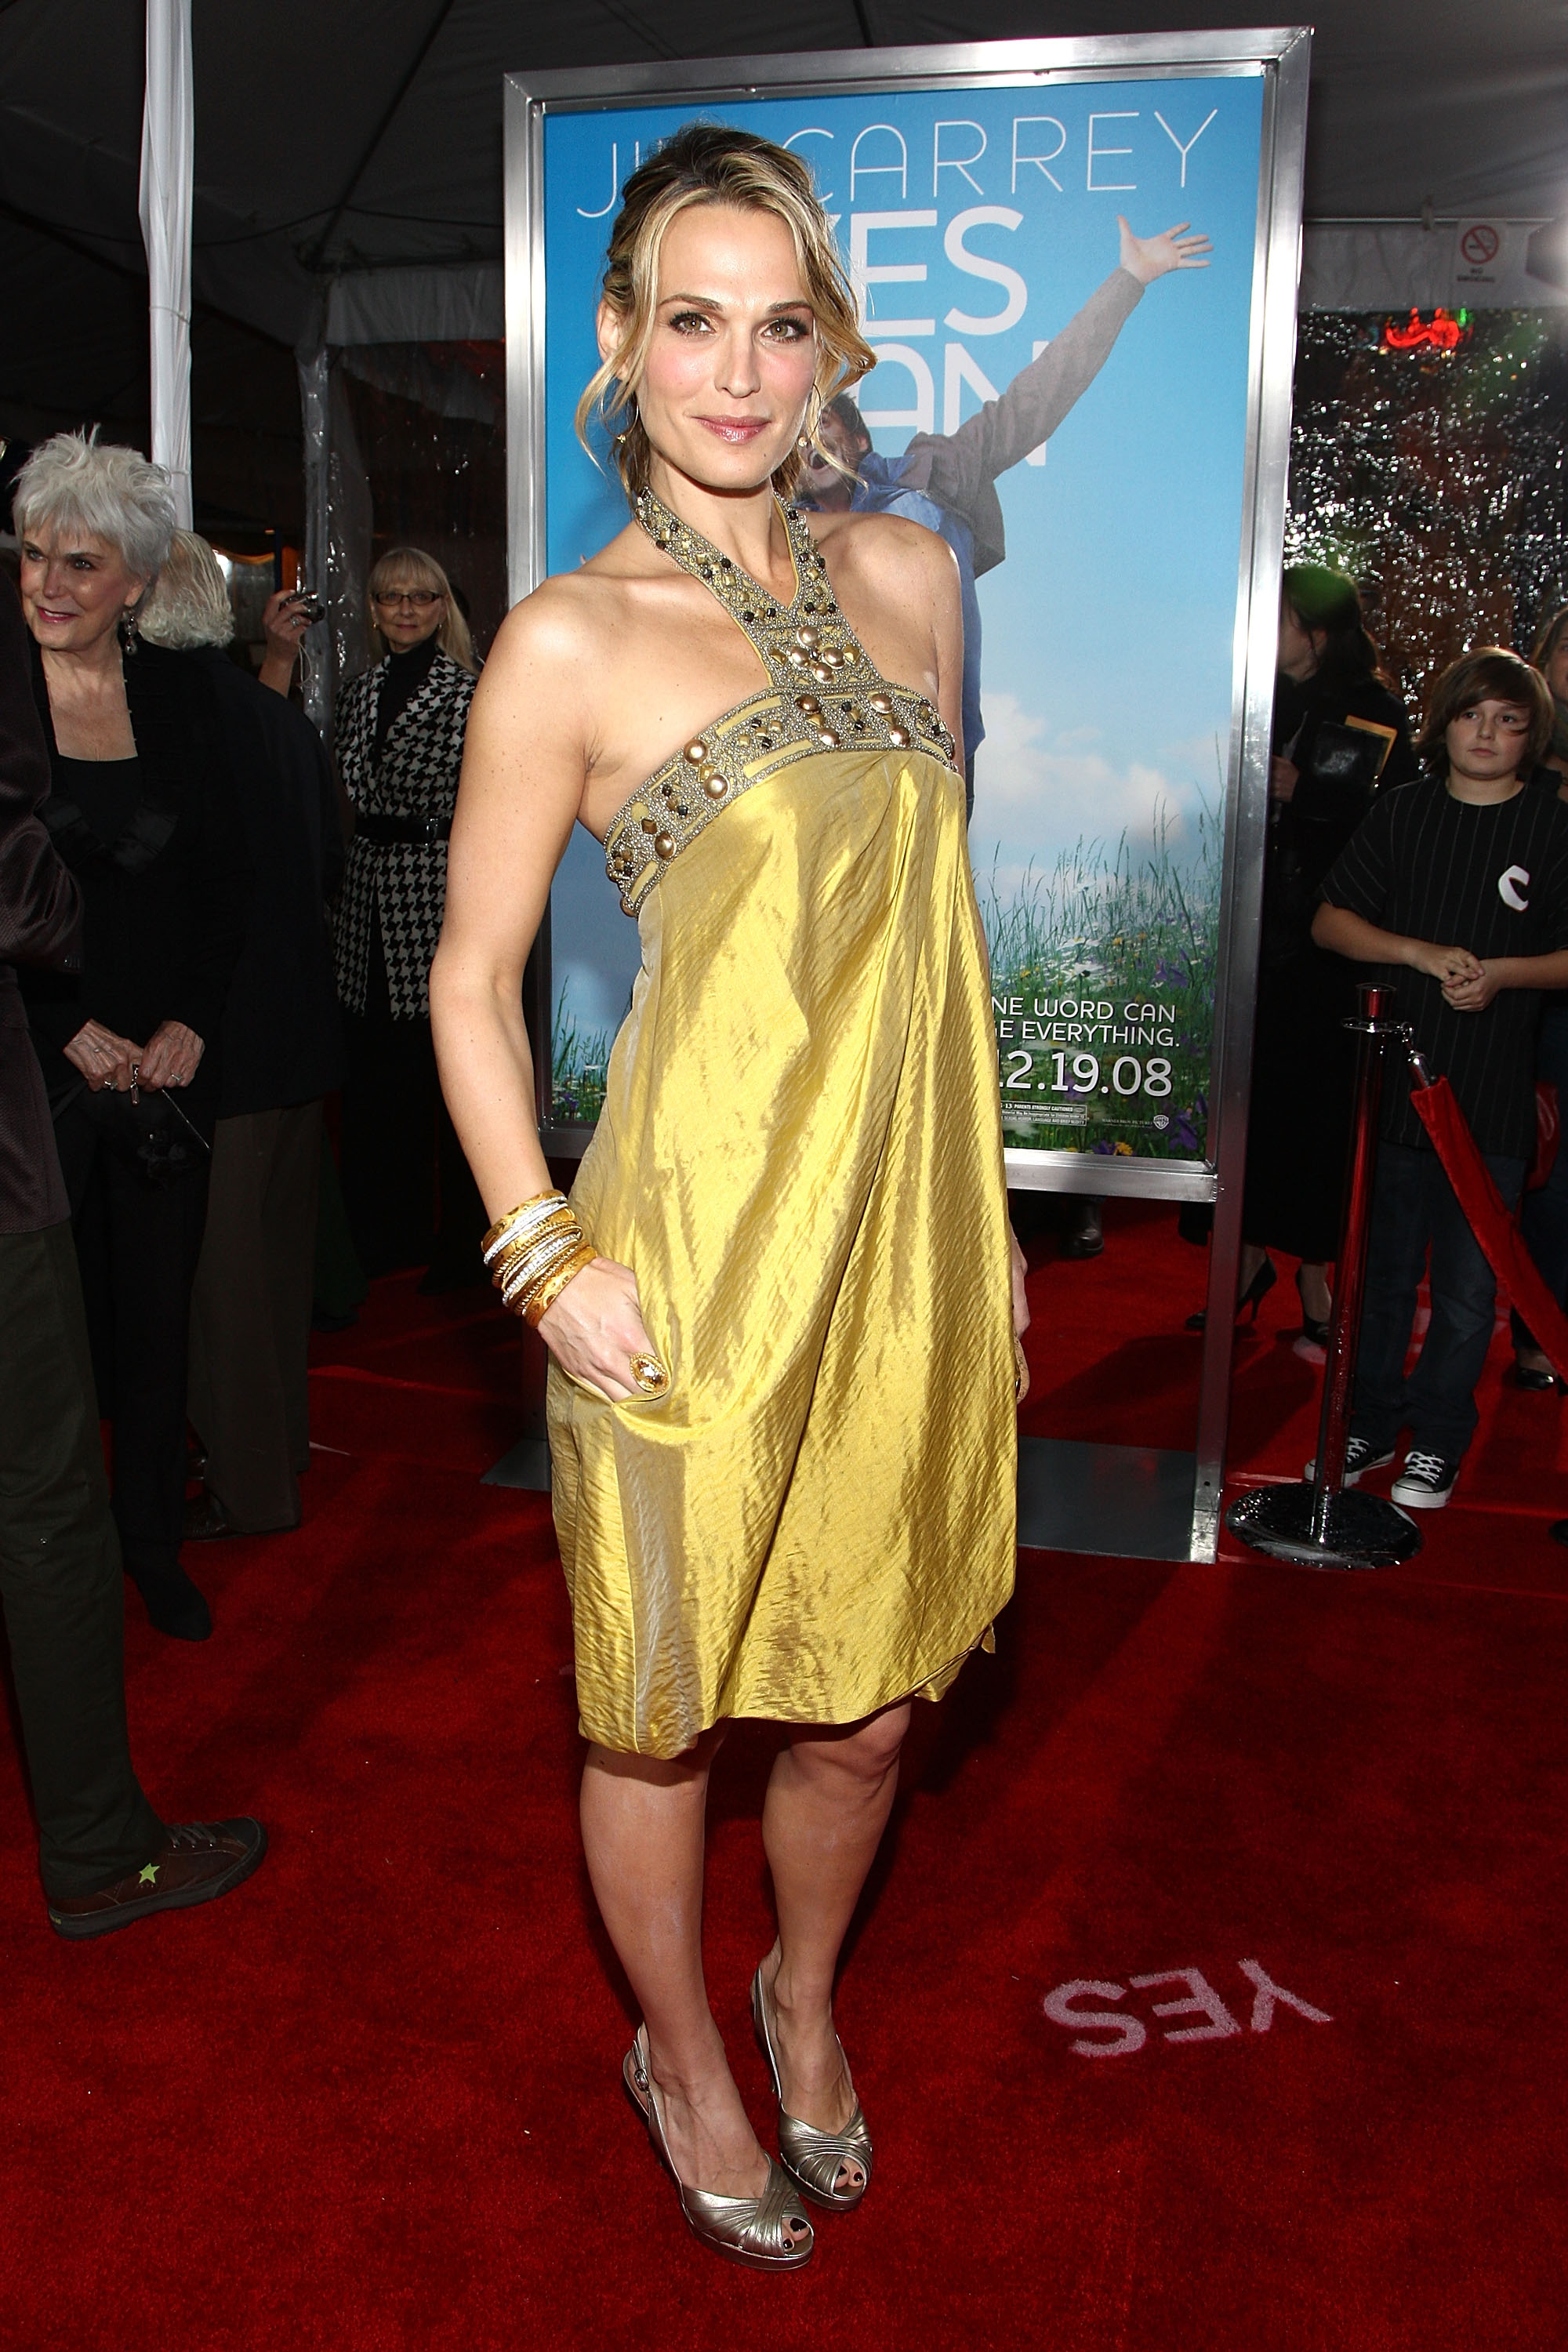 84009_Celebutopia-Molly_Sims-Yes_Man_premiere_in_Los_Angeles-03_122_126lo.jpg